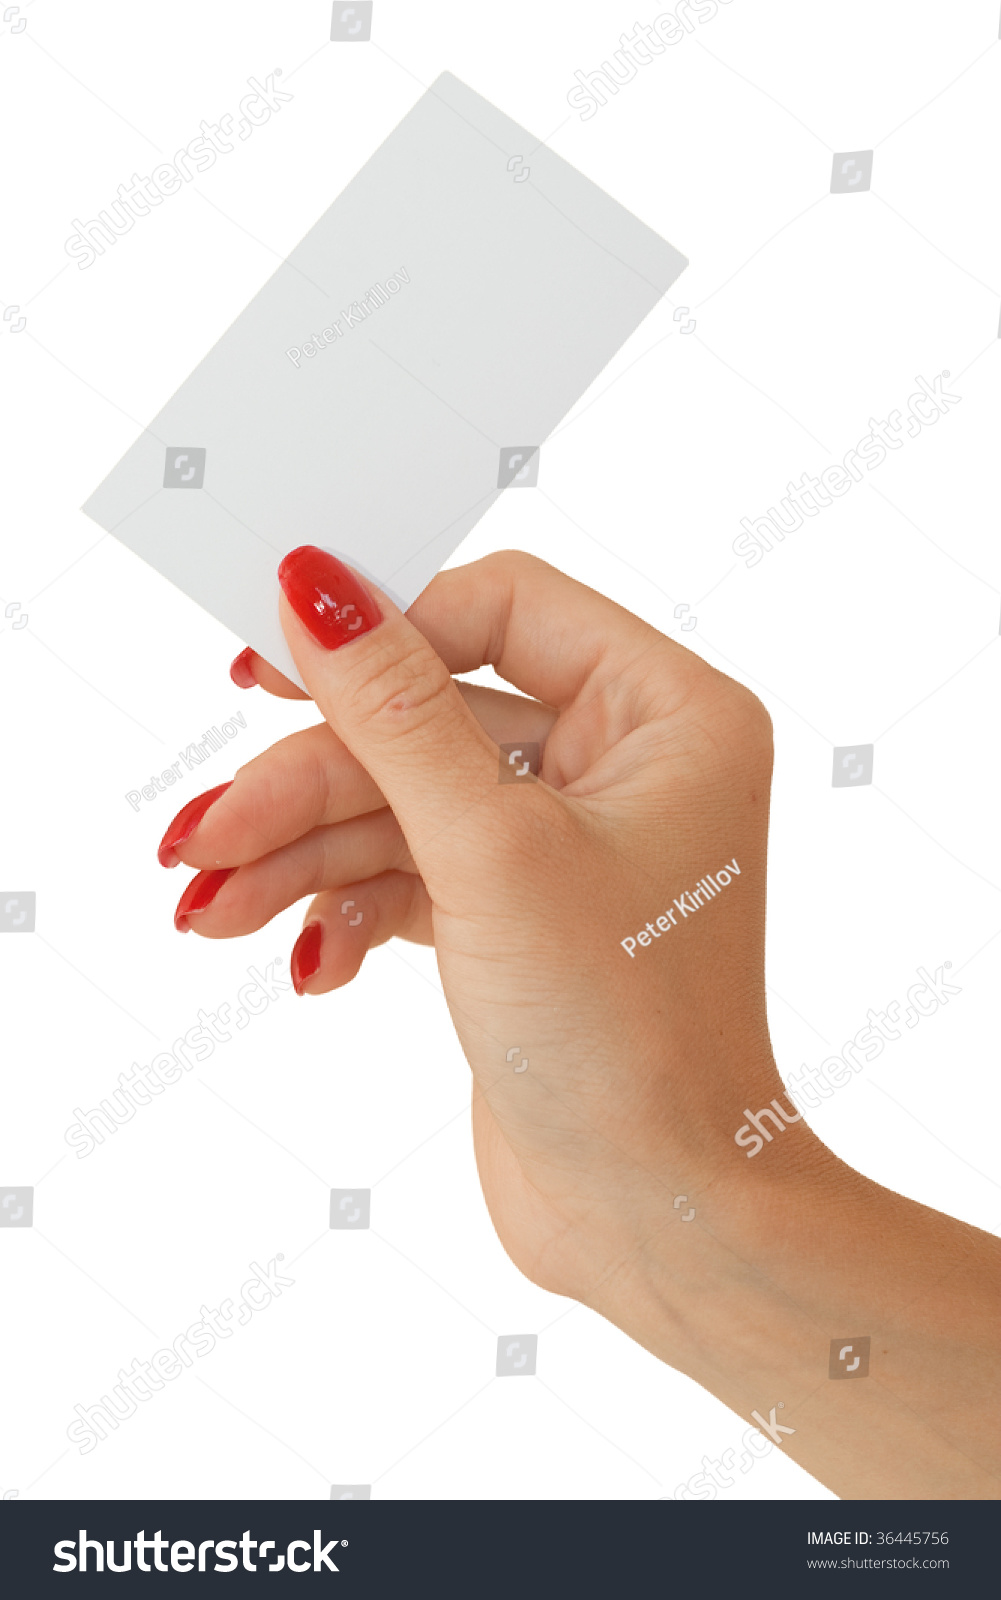 Technology Management Image: Nice Female Hand Holding A Blank Business Card Stock Photo